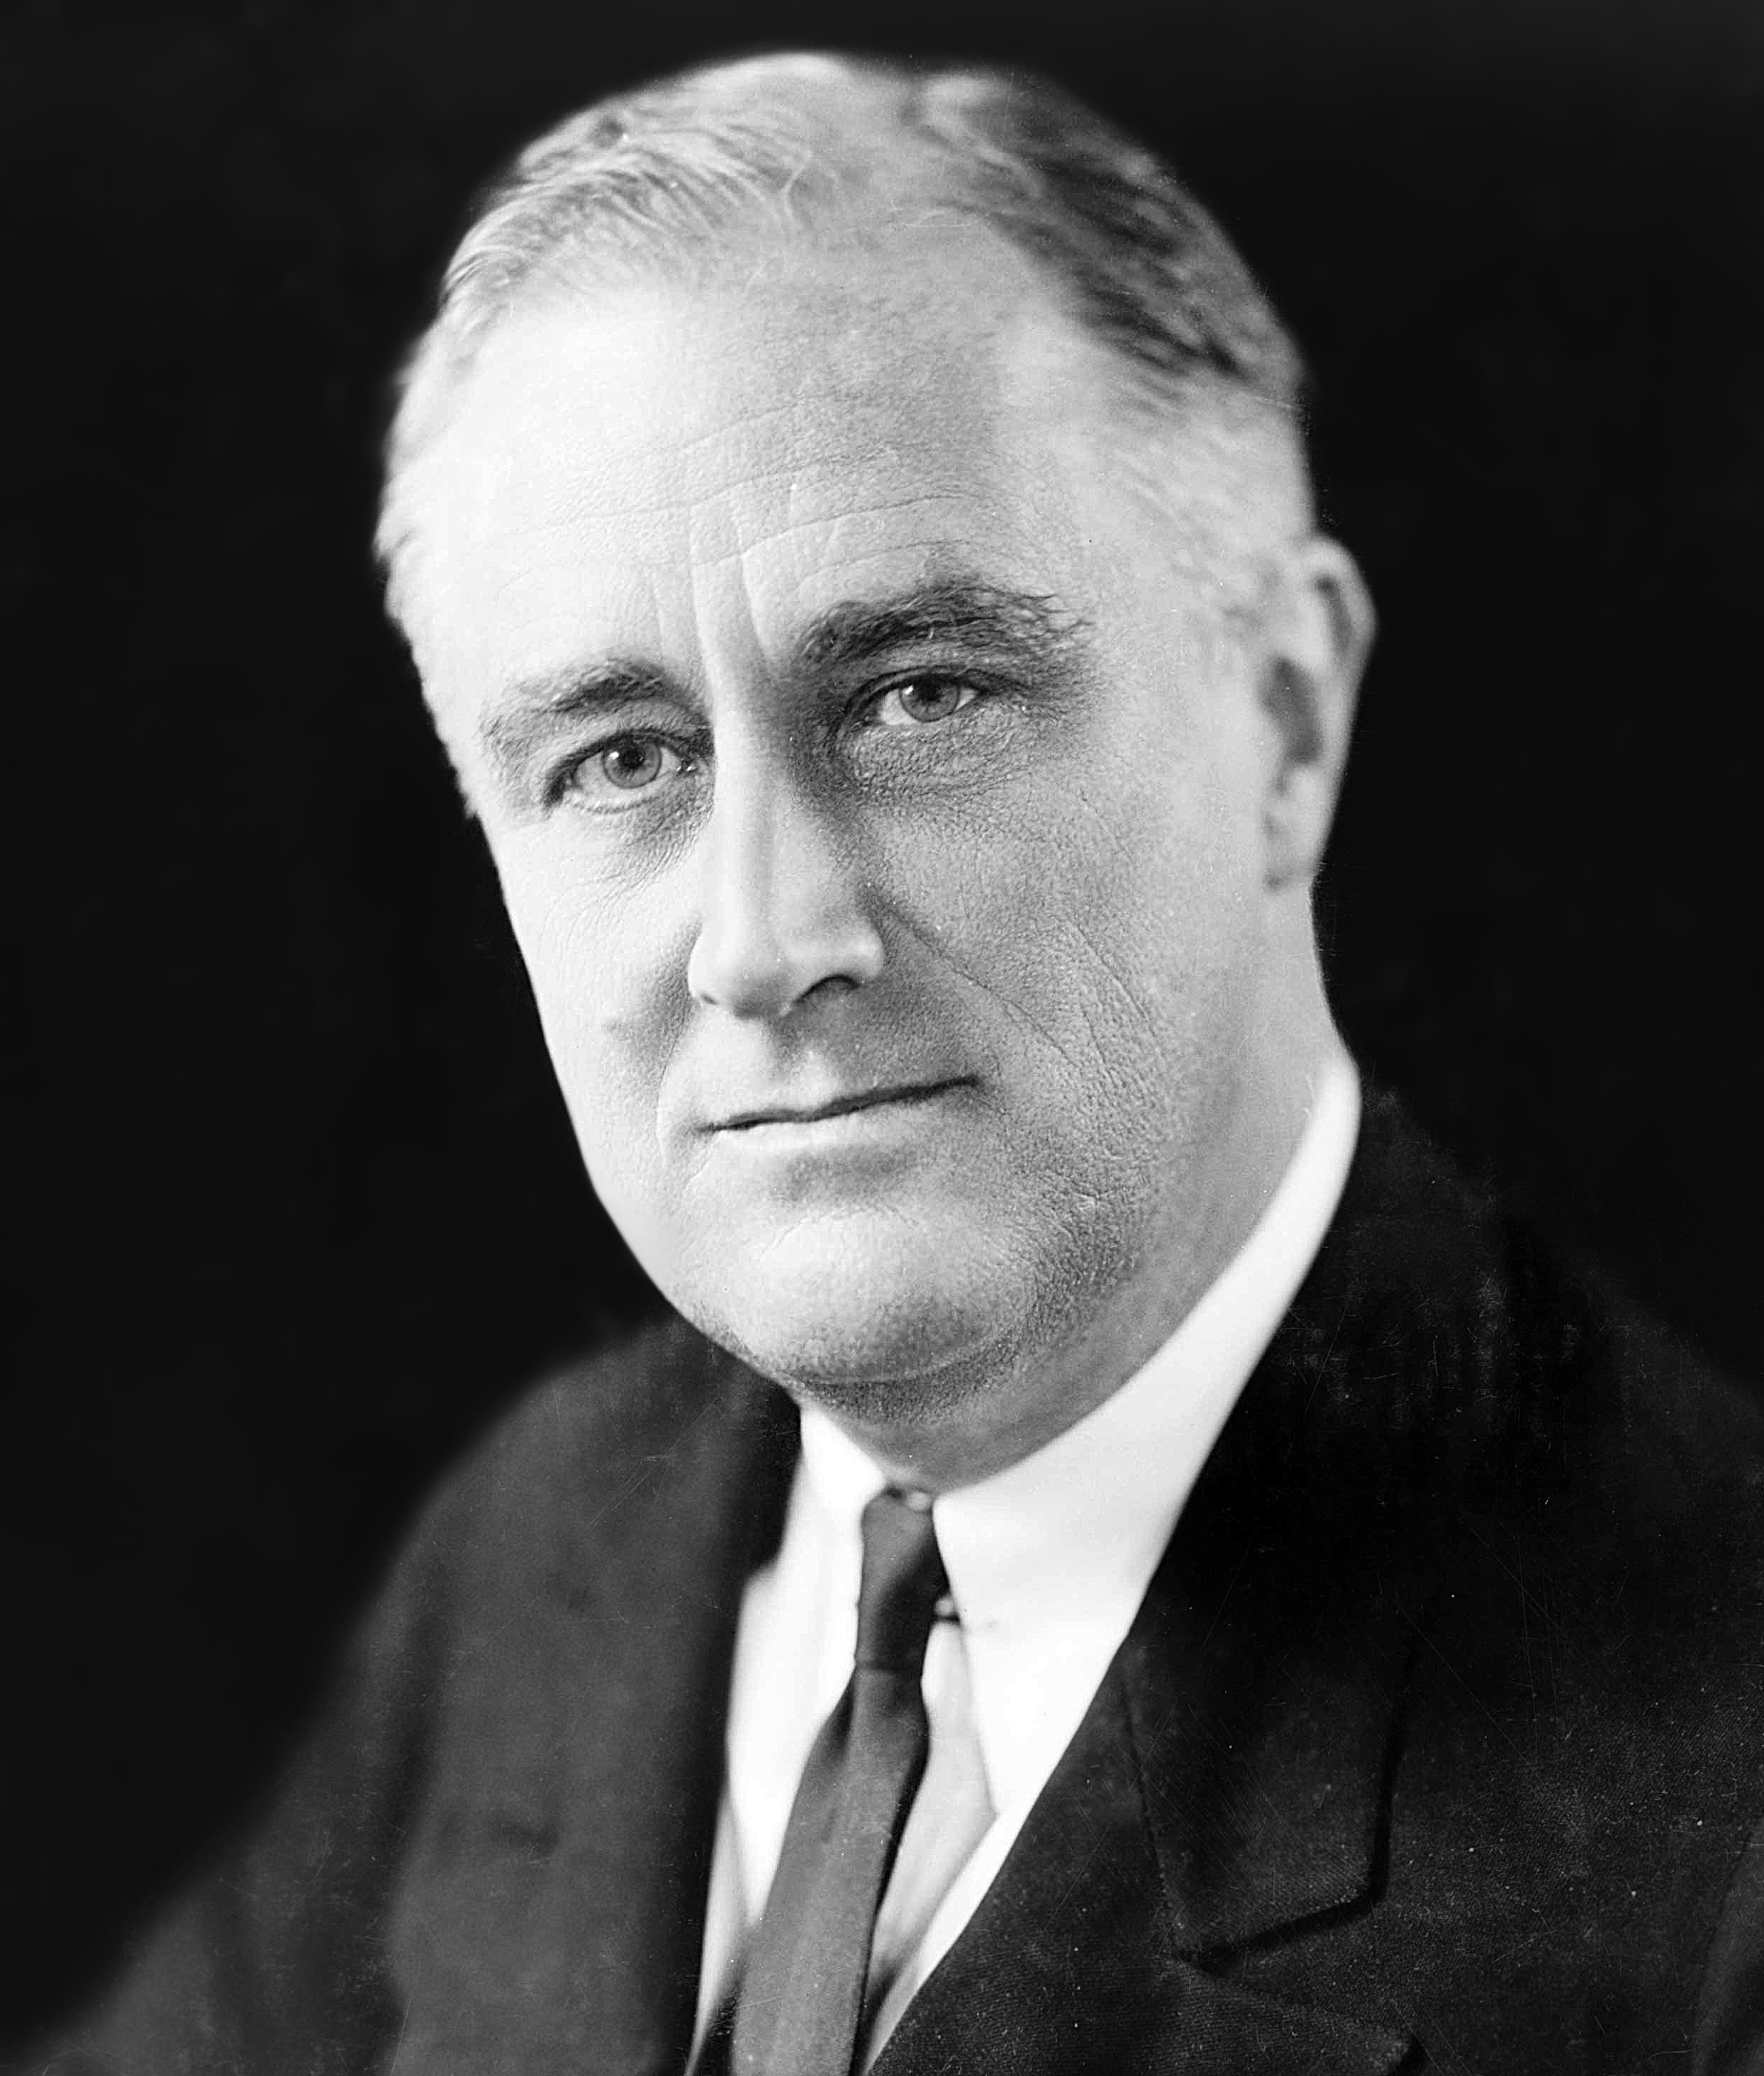 Franklin D. Roosevelt in 1933. Photo by Elias Goldensky/Wikimedia Commons.